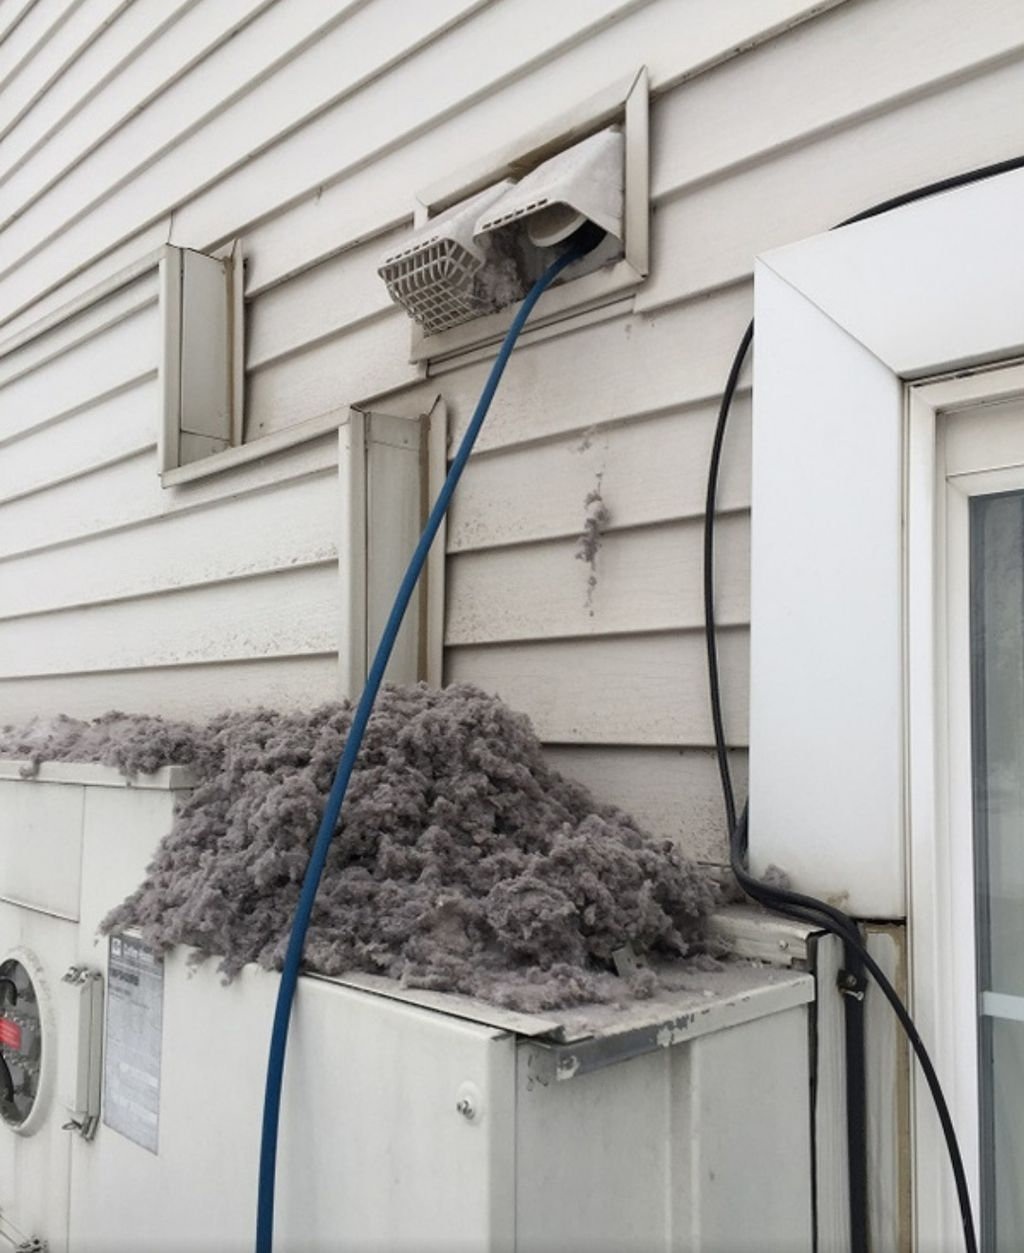 Cleaning of dryer vent